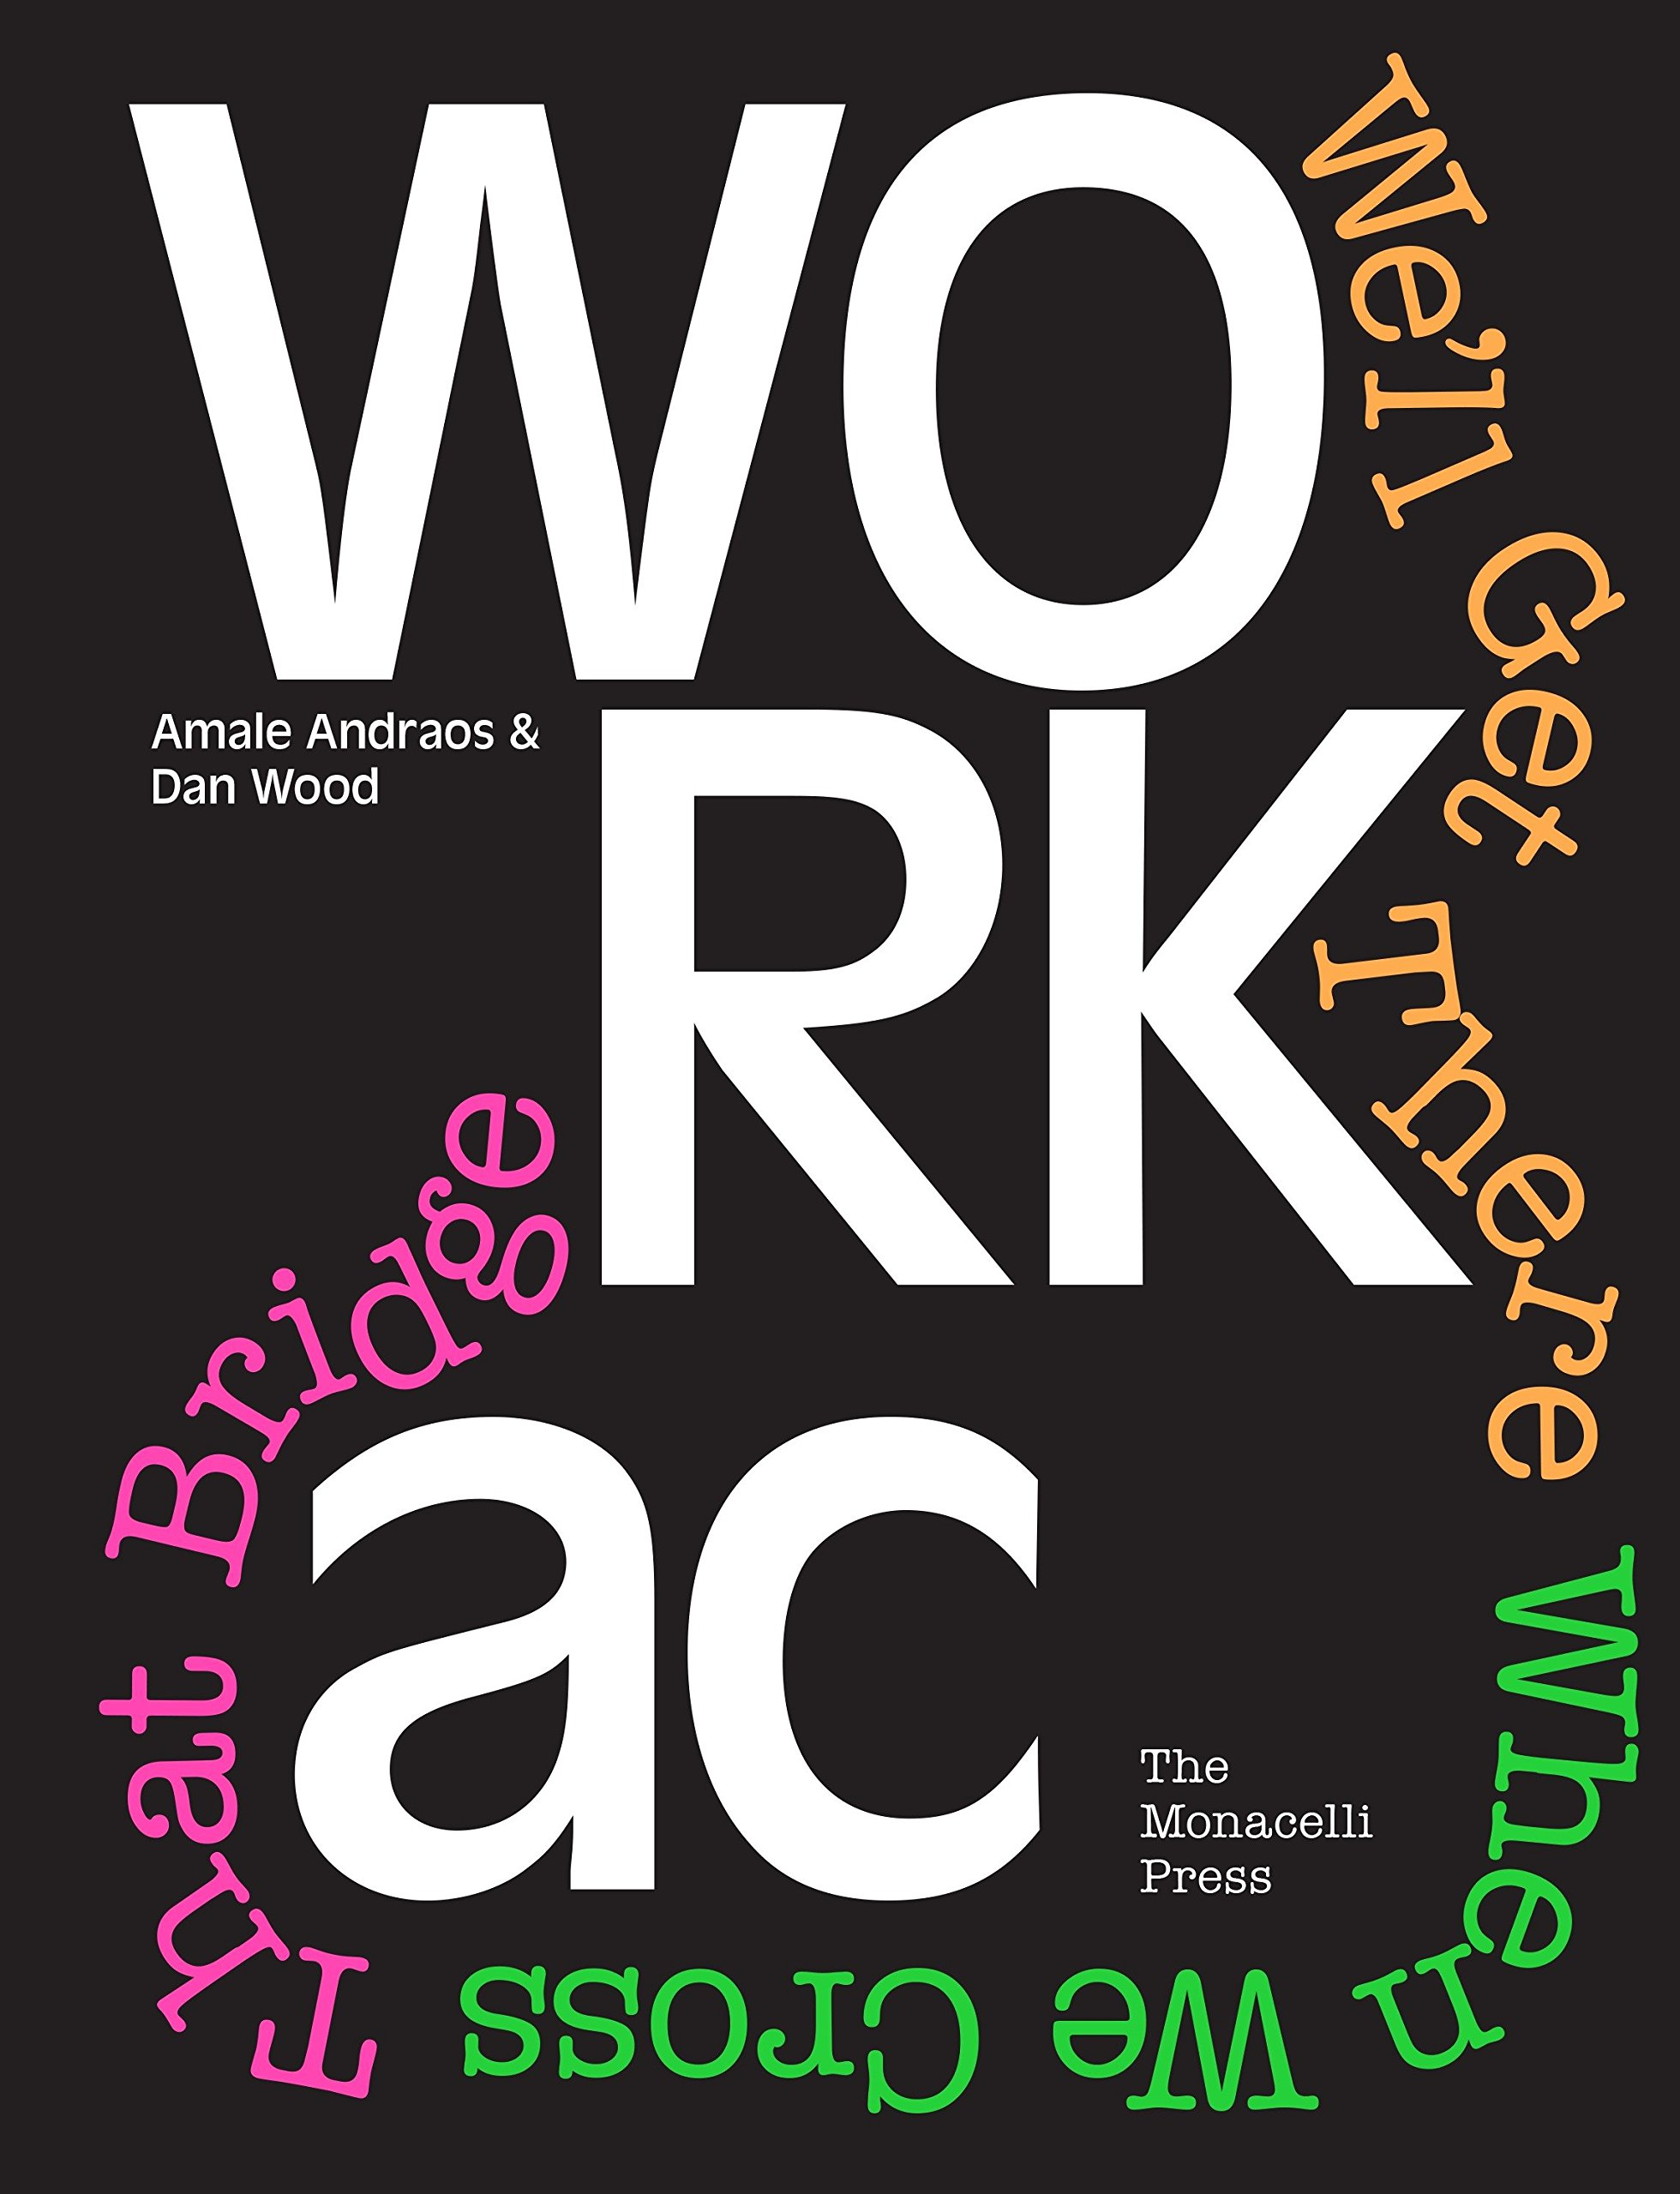 WORKac: We'll Get There When We Cross That Bridge